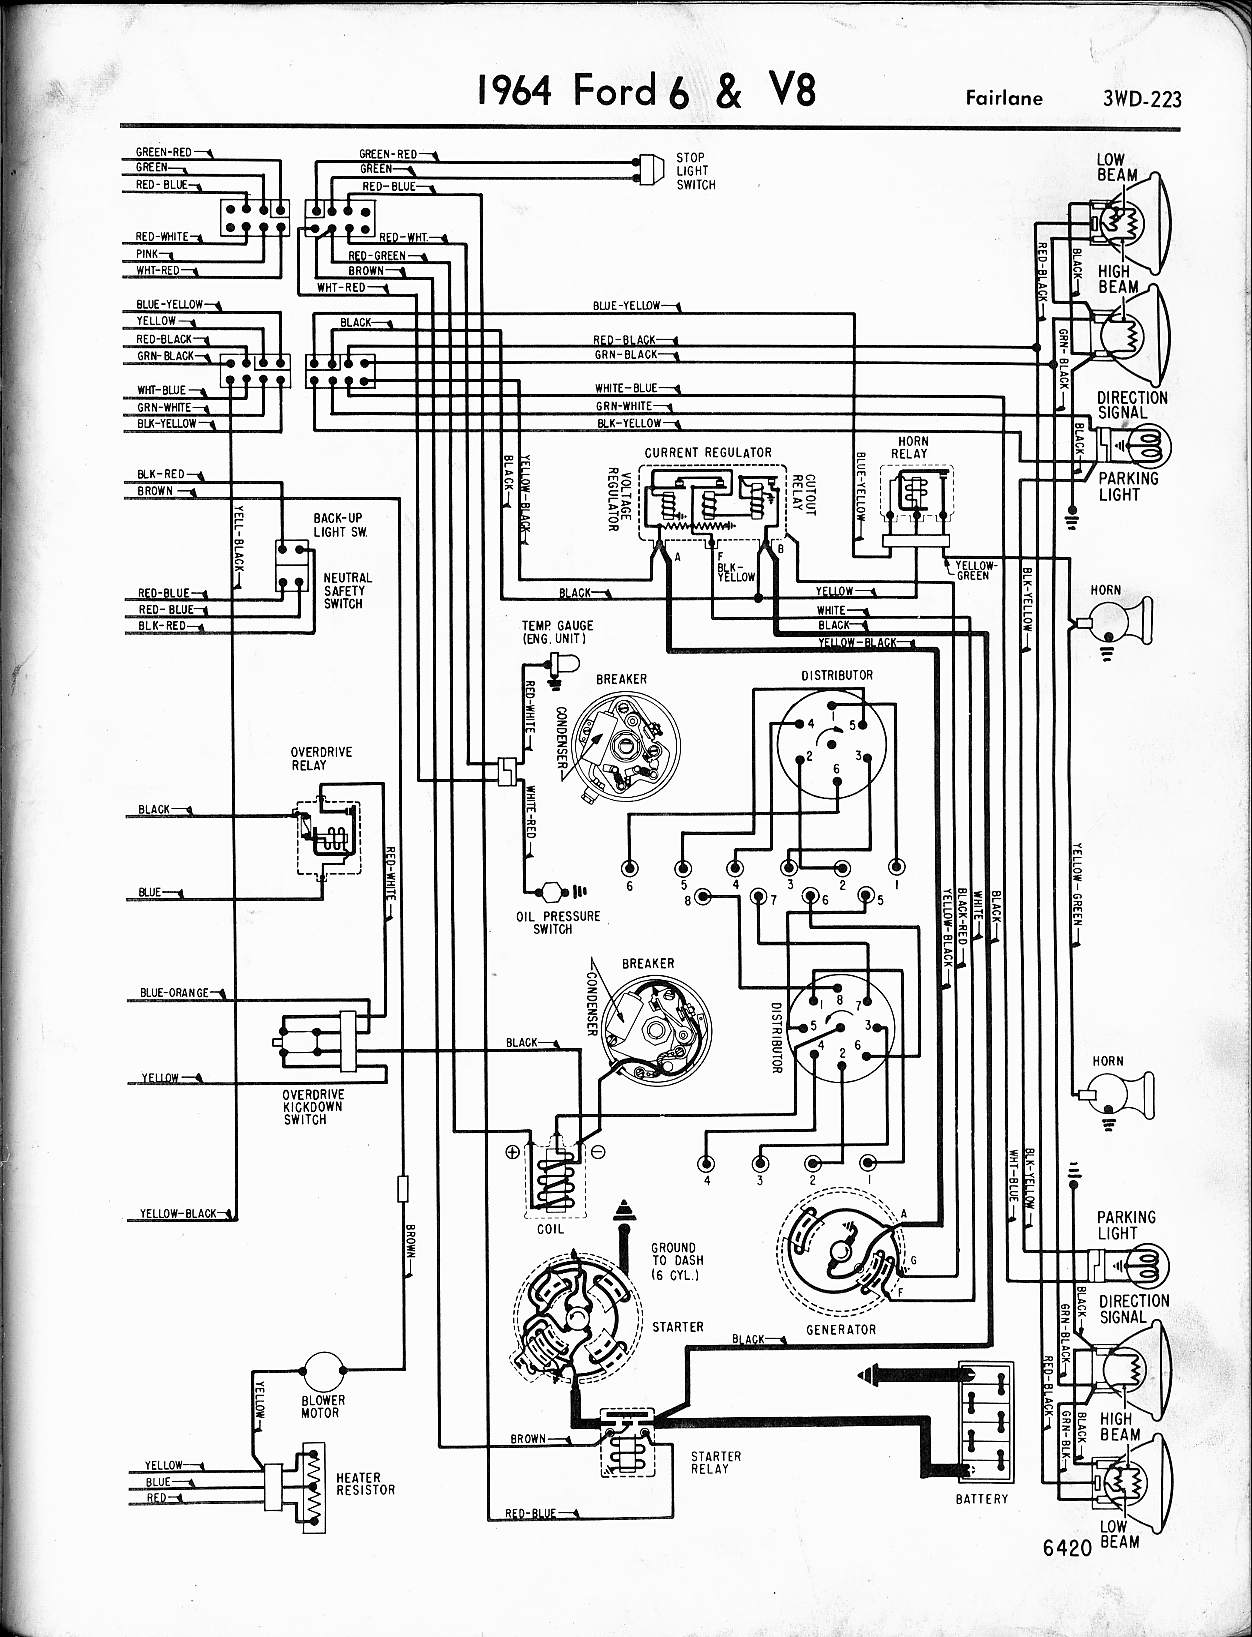 1962 Dodge Lancer Wiring Diagram Reinvent Your 1960 57 65 Ford Diagrams Rh Oldcarmanualproject Com 1965